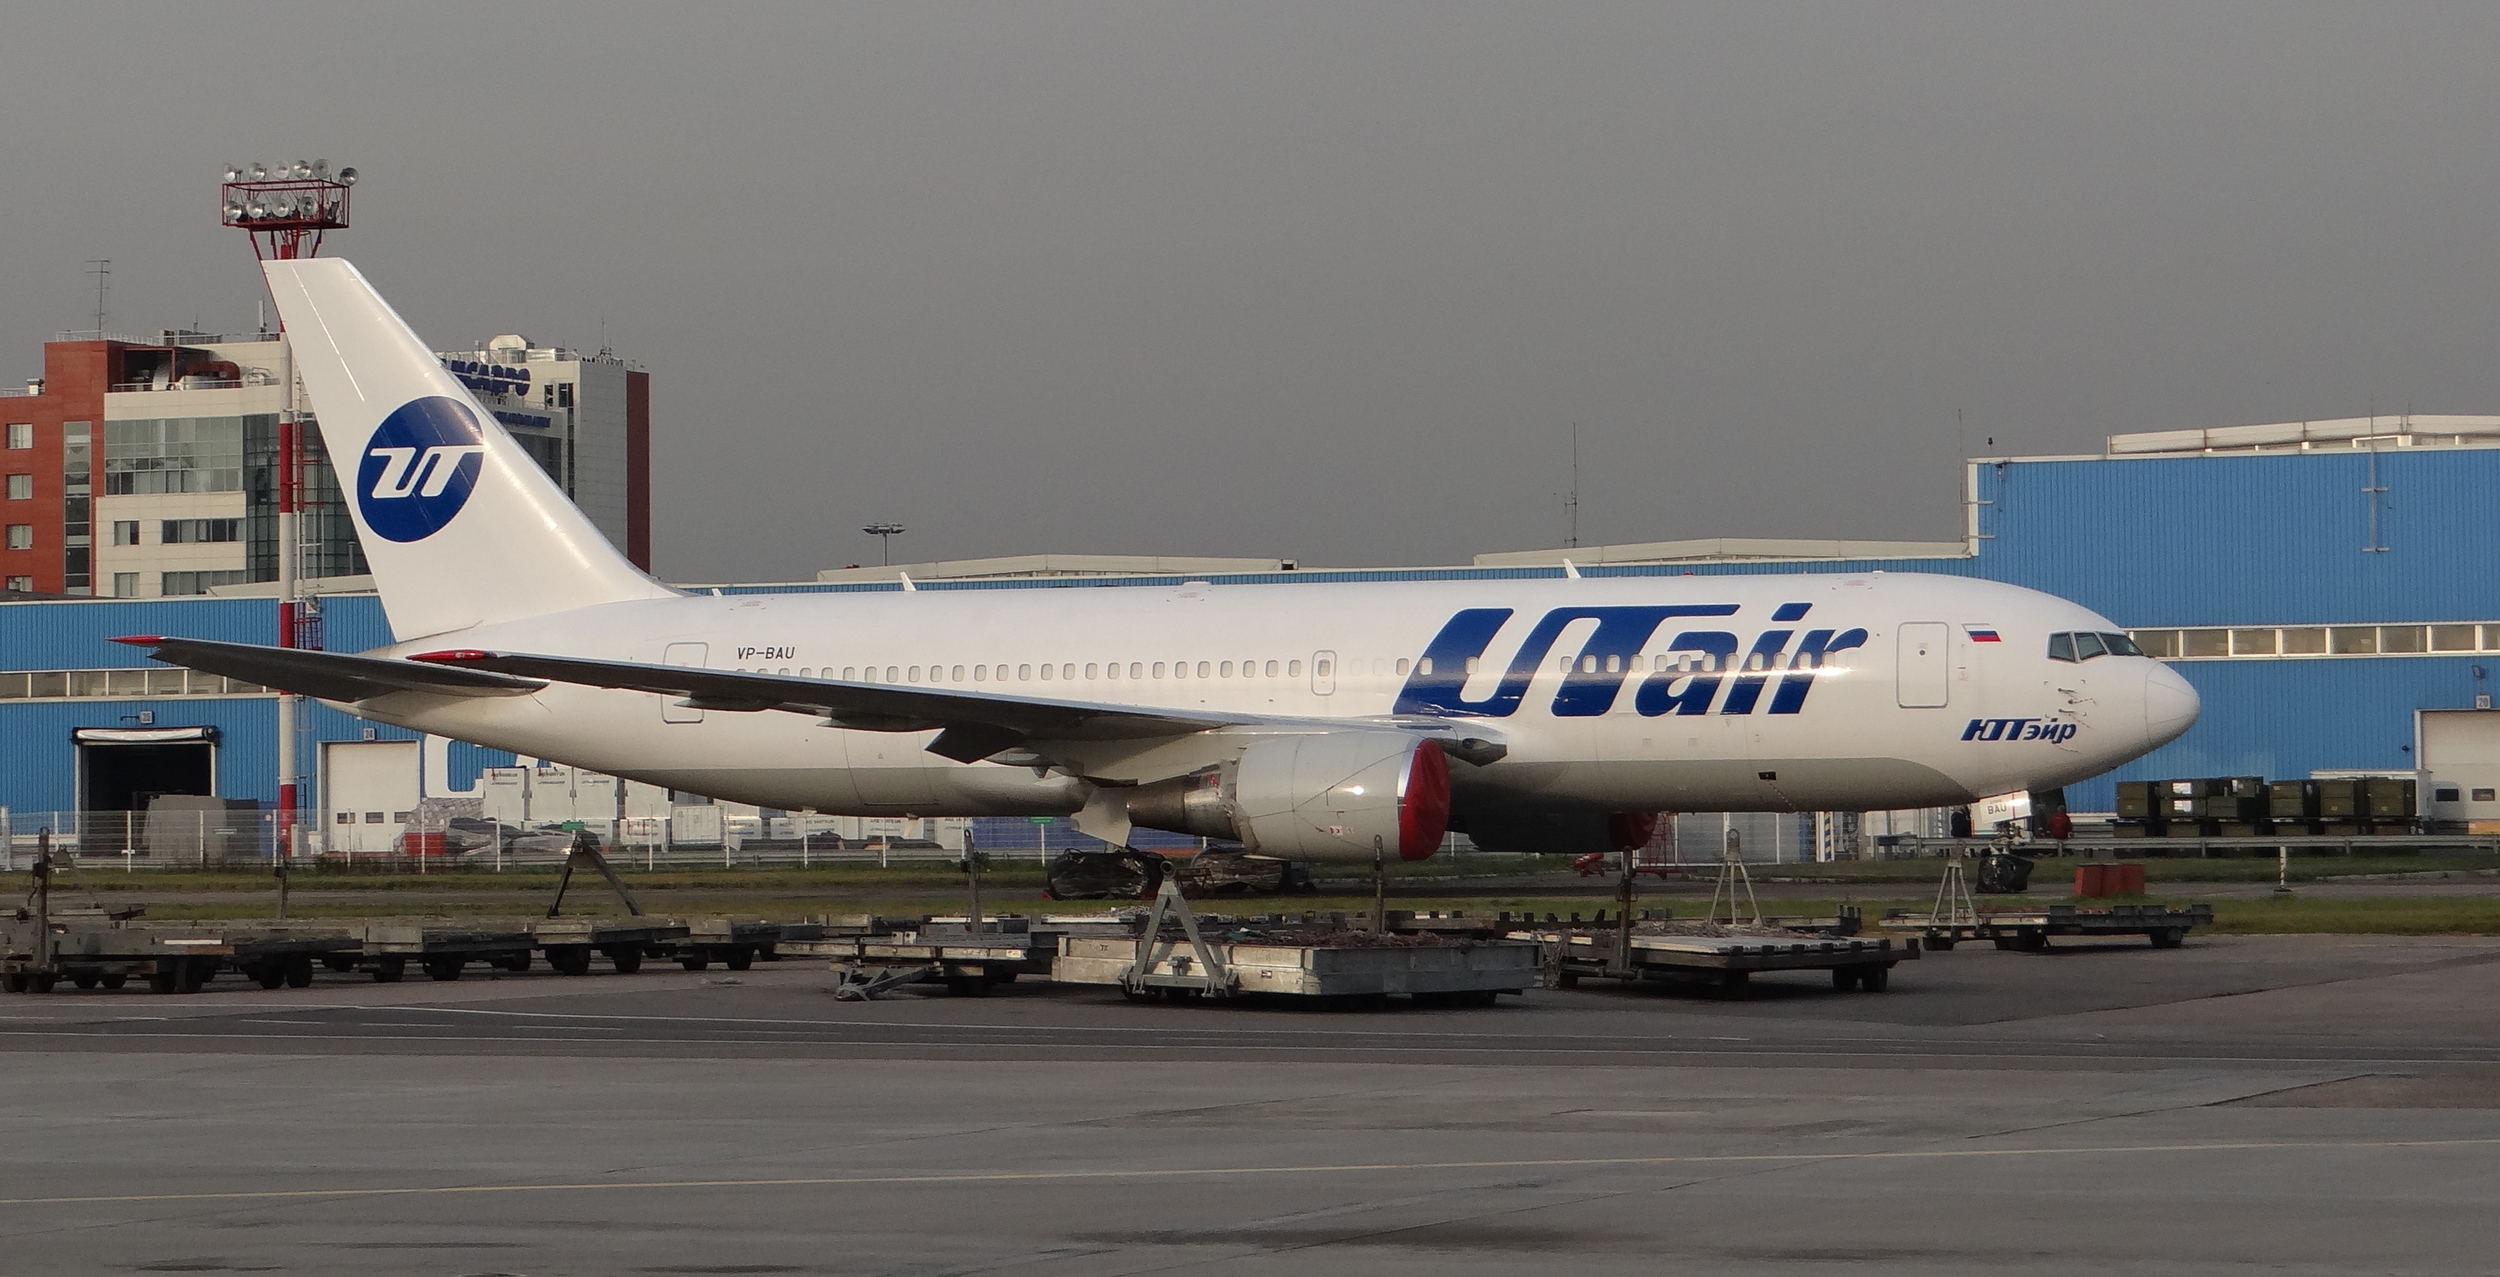 Although most of  UTair fleet  is based at Vnukovo airport (VKO), we could see this Boeing 767